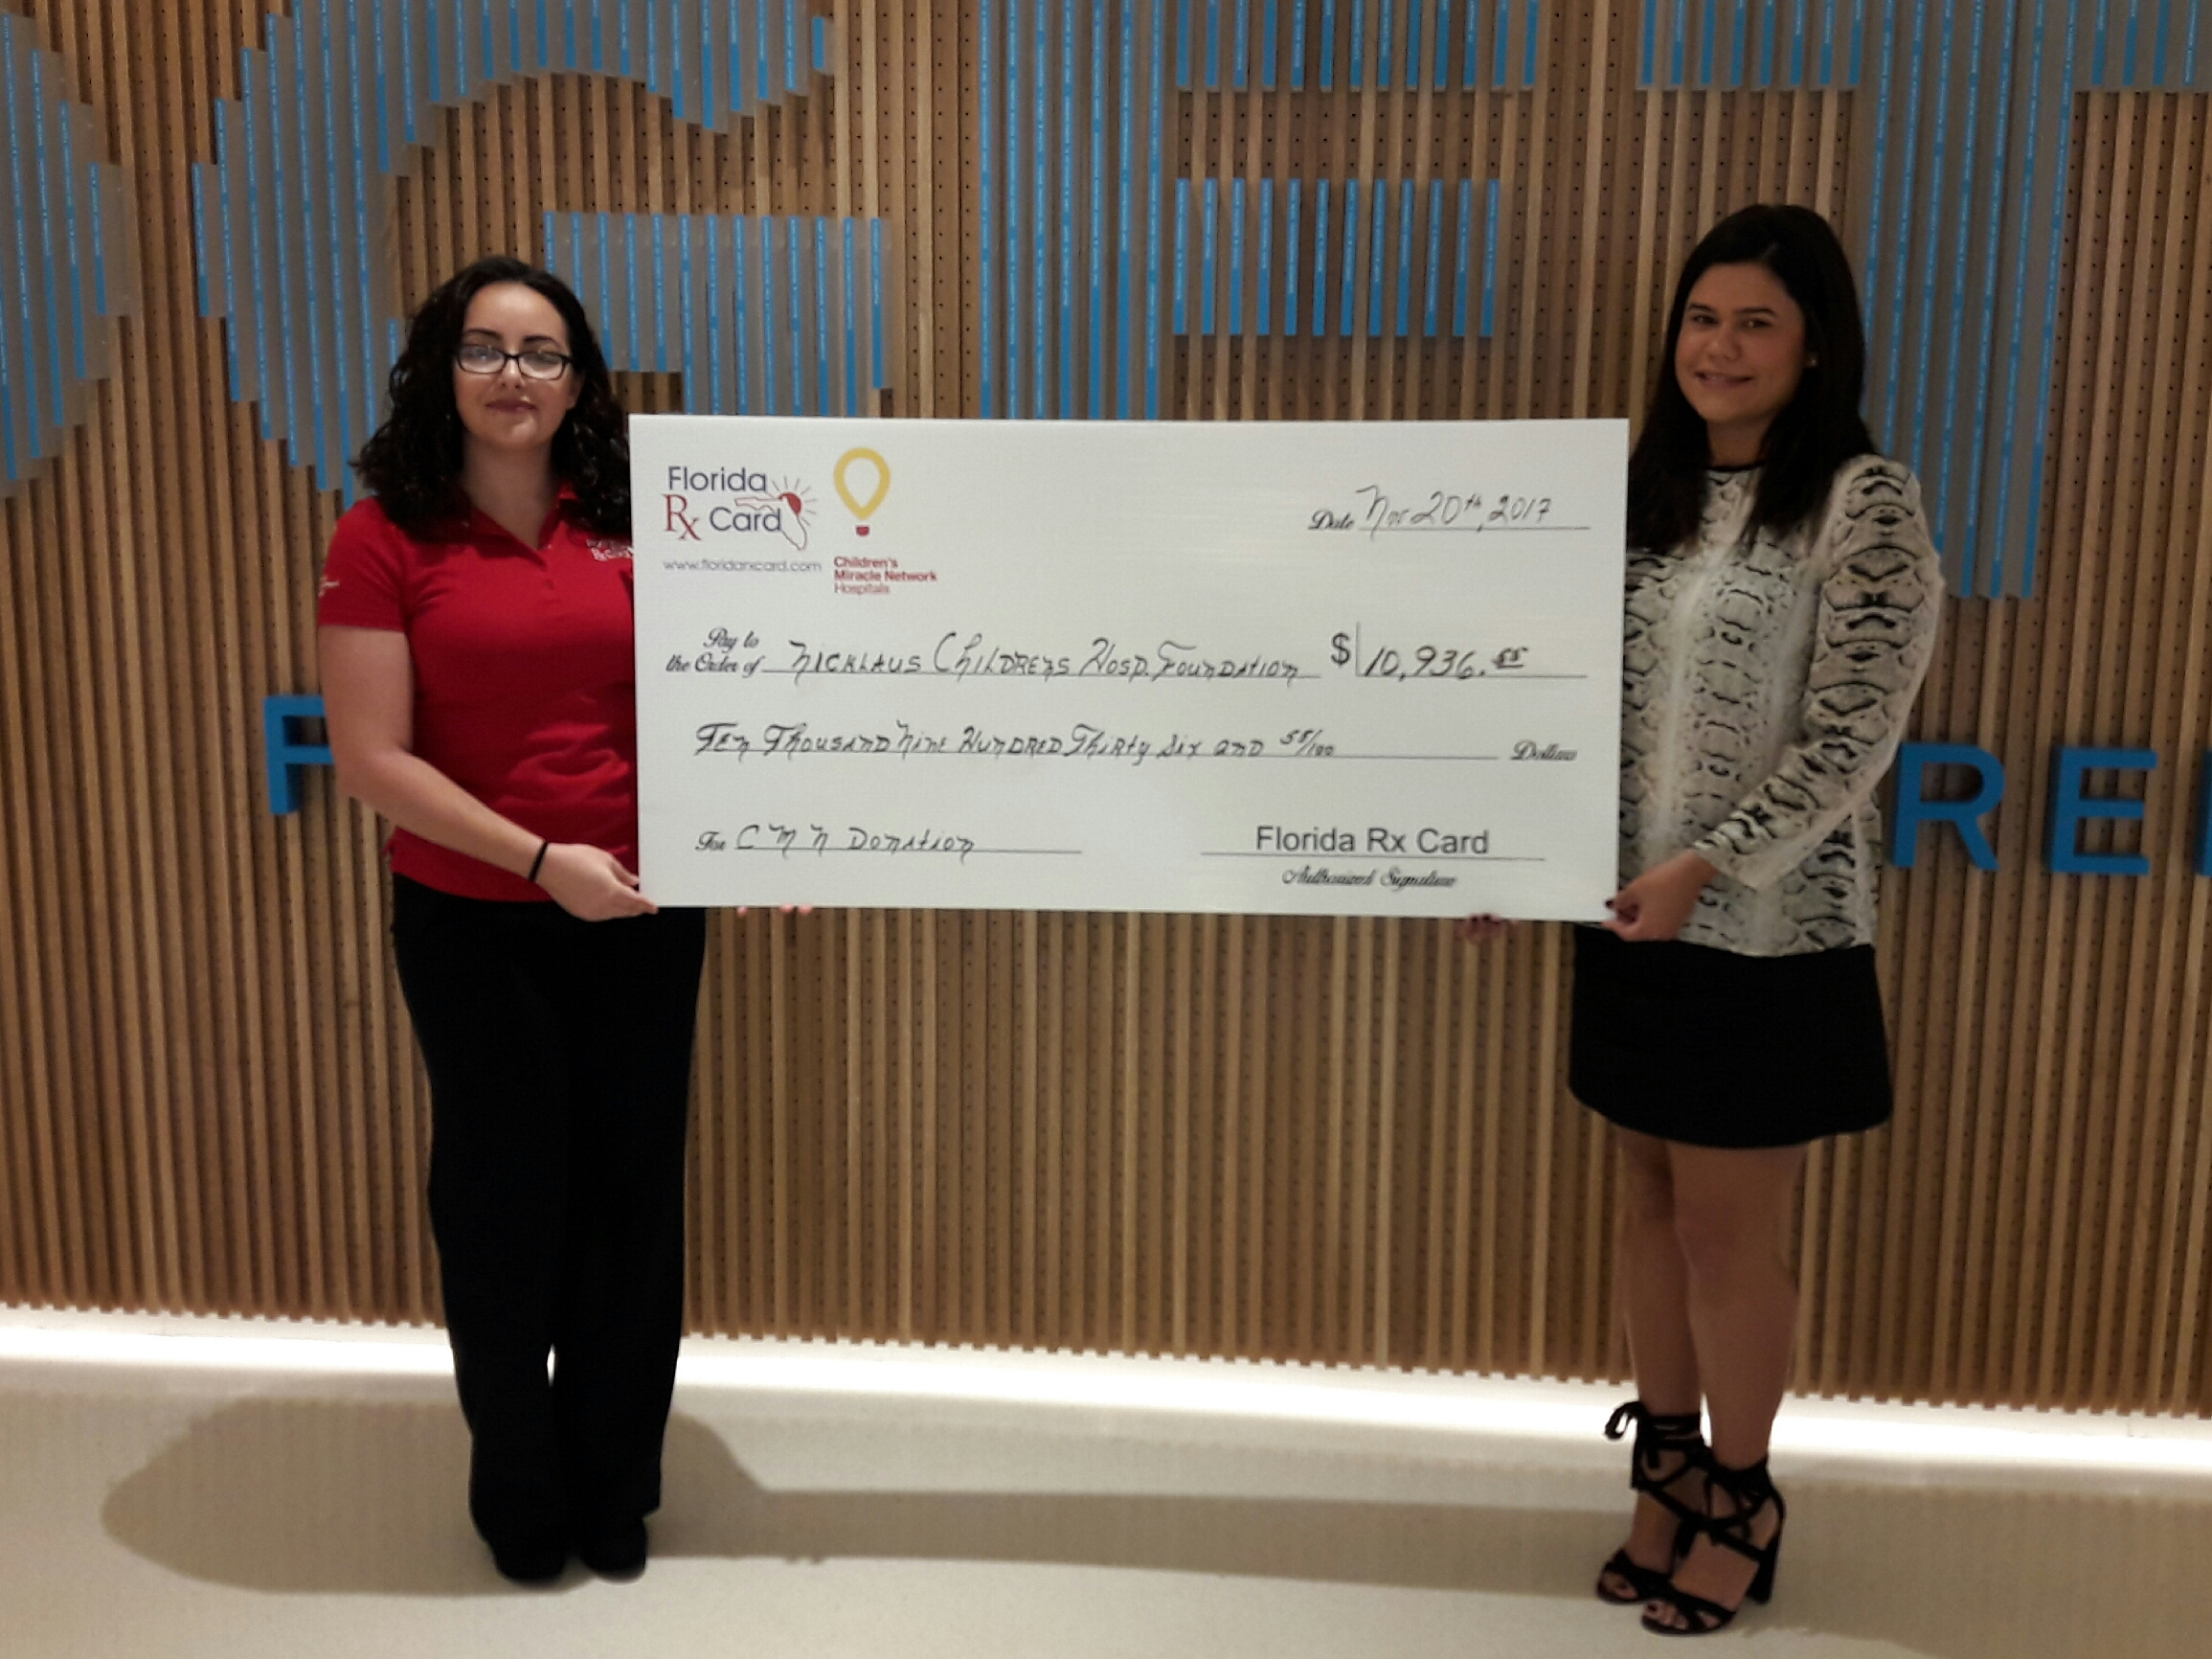 Nicklaus Children's Hospital Foundation Receives Support from Florida Rx Card and United Networks of America